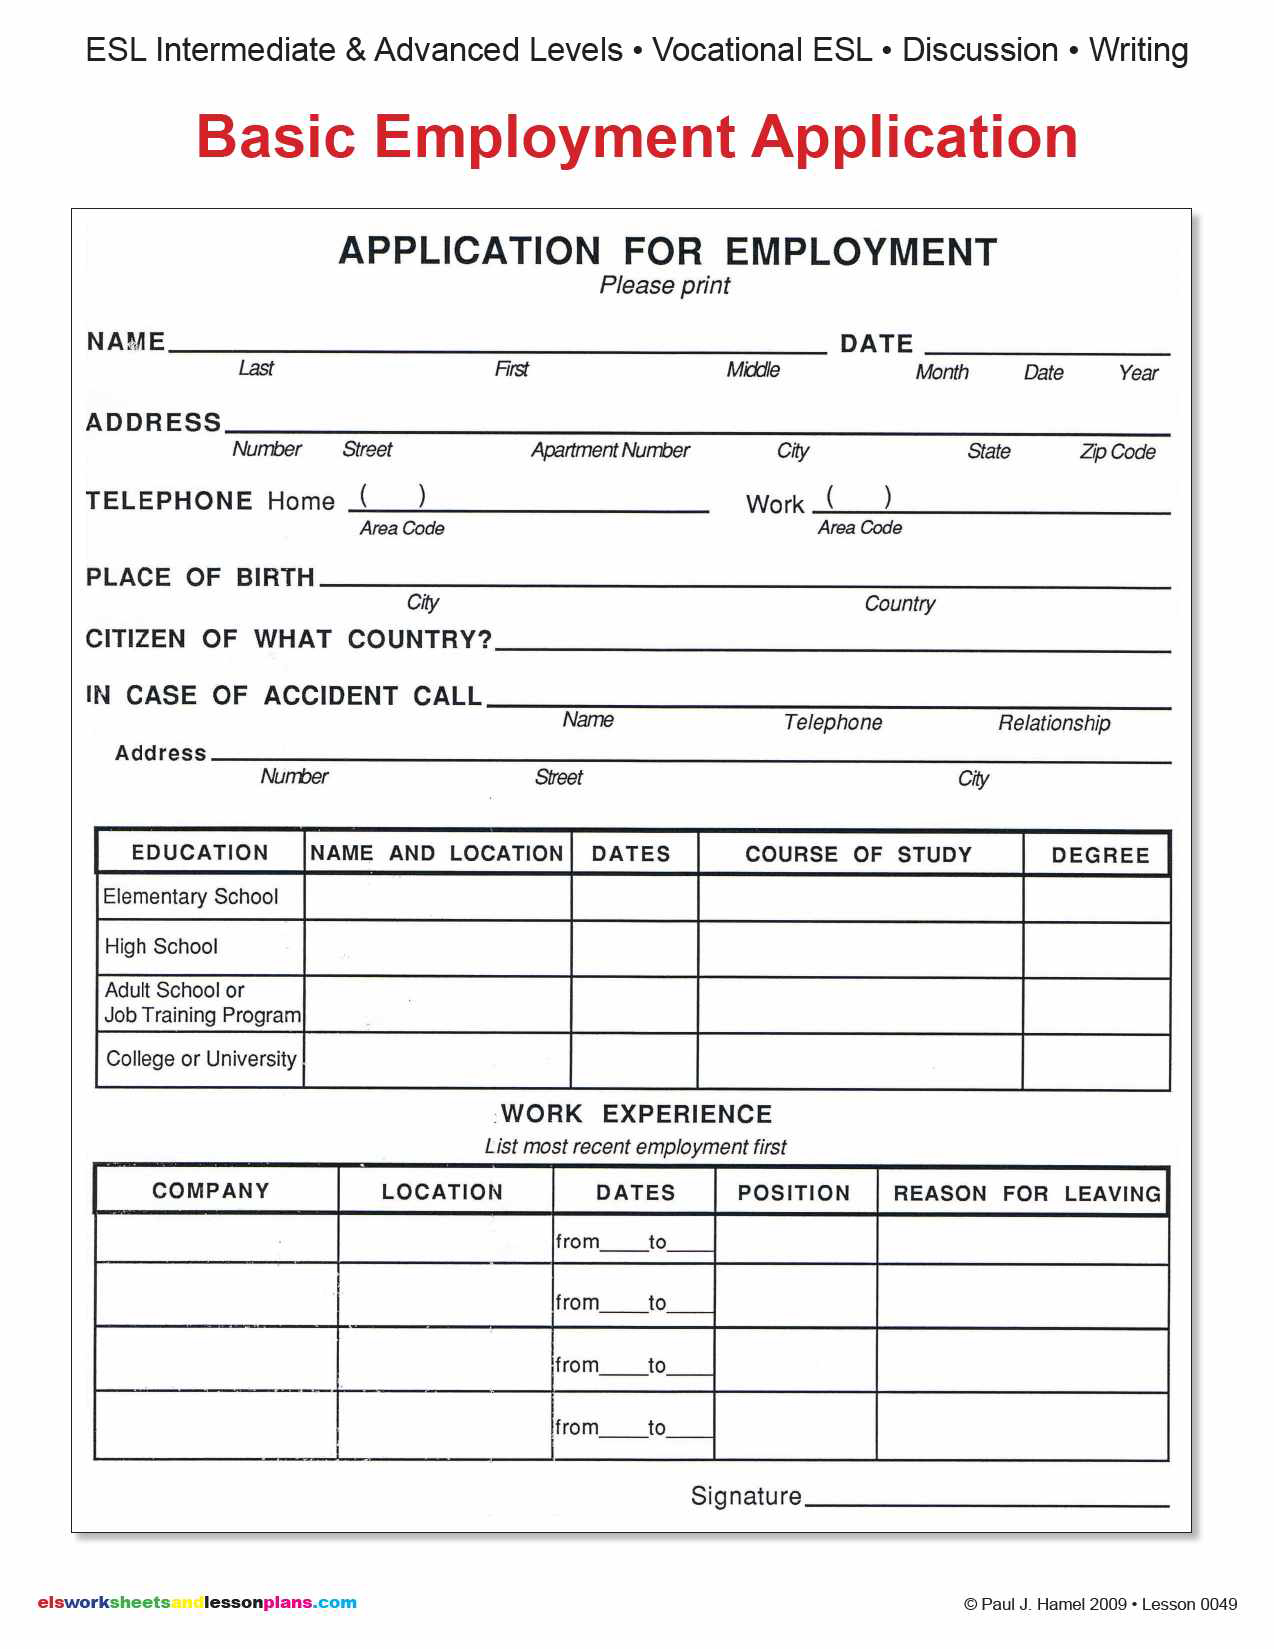 application esl basic employment application payloadz express 52Construction Job Application Template